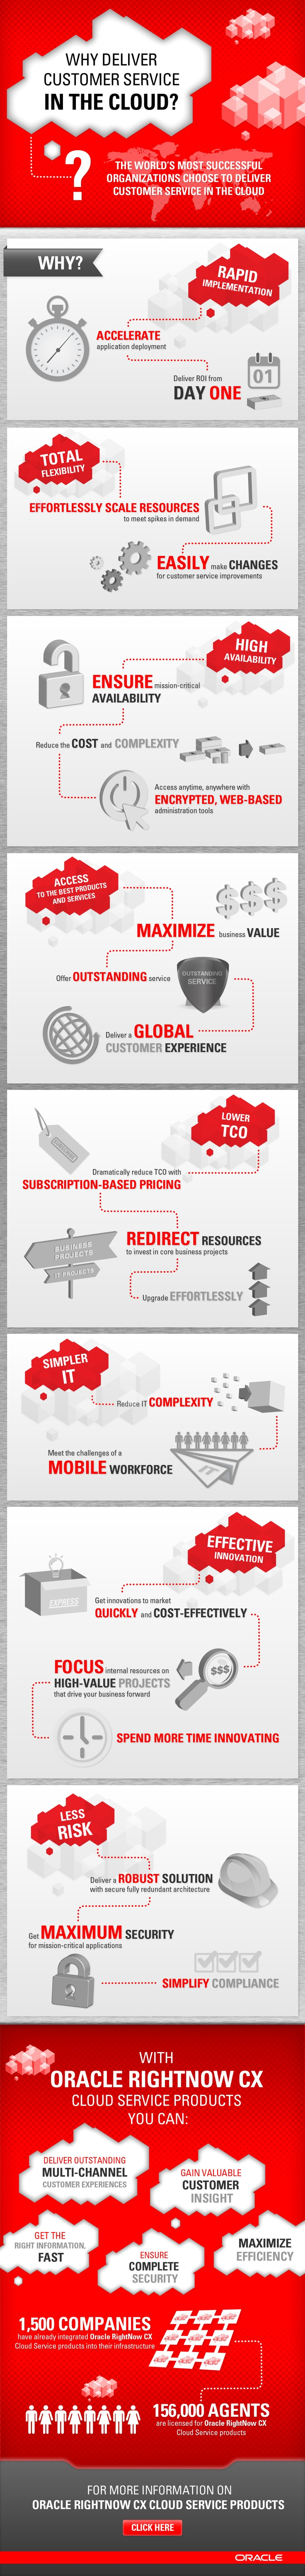 1000 images about enjoy oracle america s why deliver customer service in the cloud